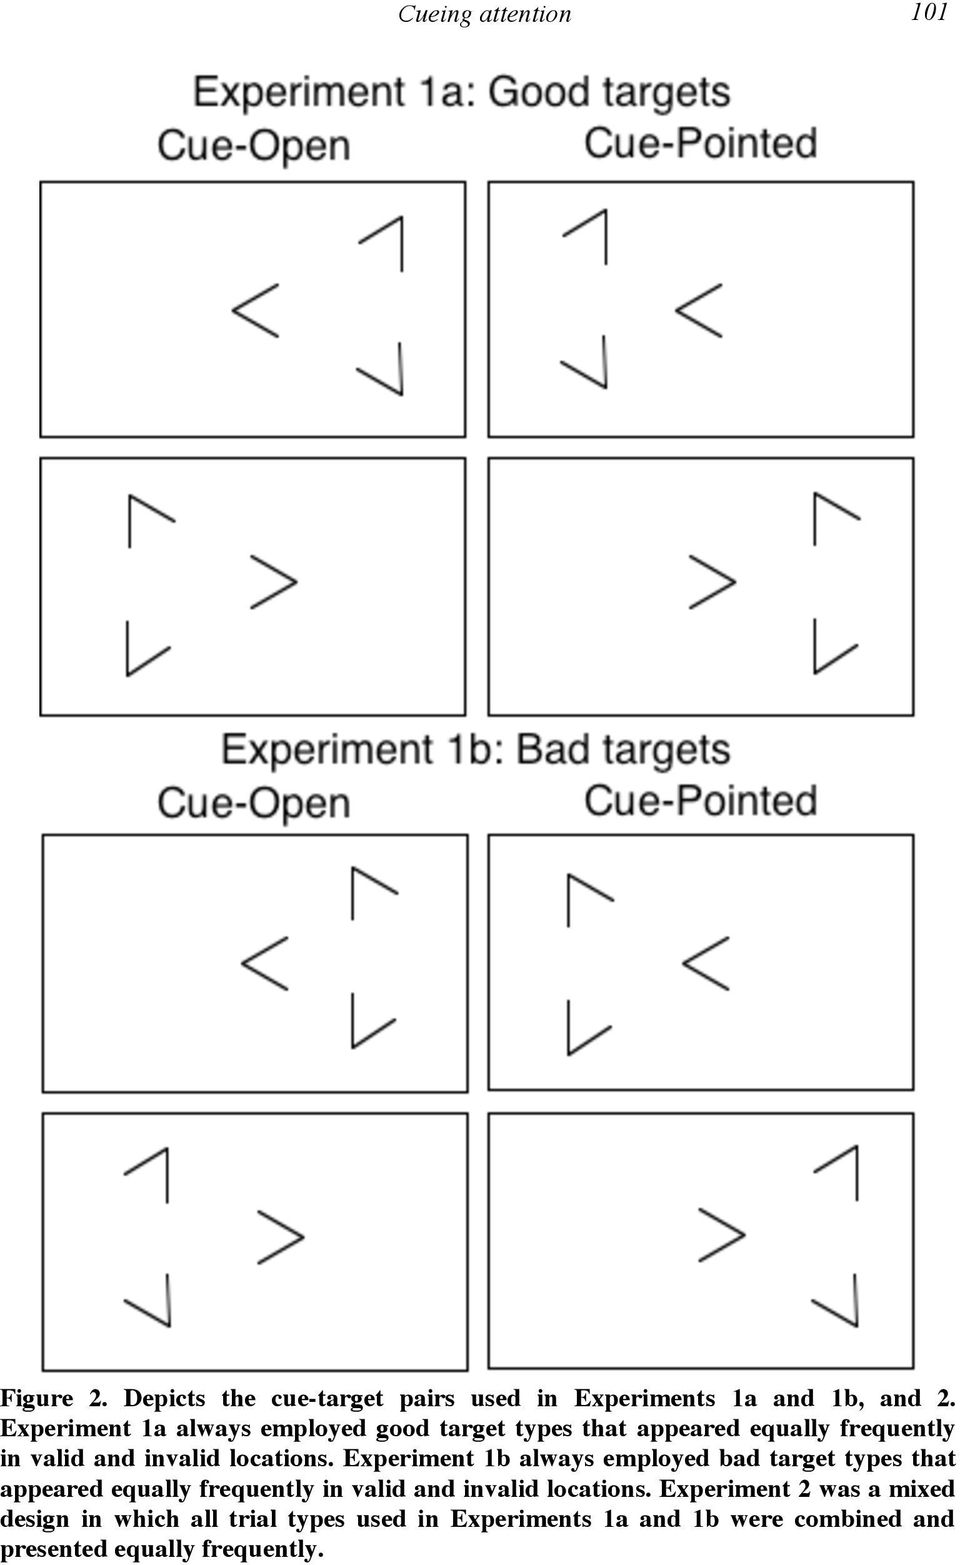 Experiment 1b always employed bad target types that appeared equally frequently in valid and invalid locations.